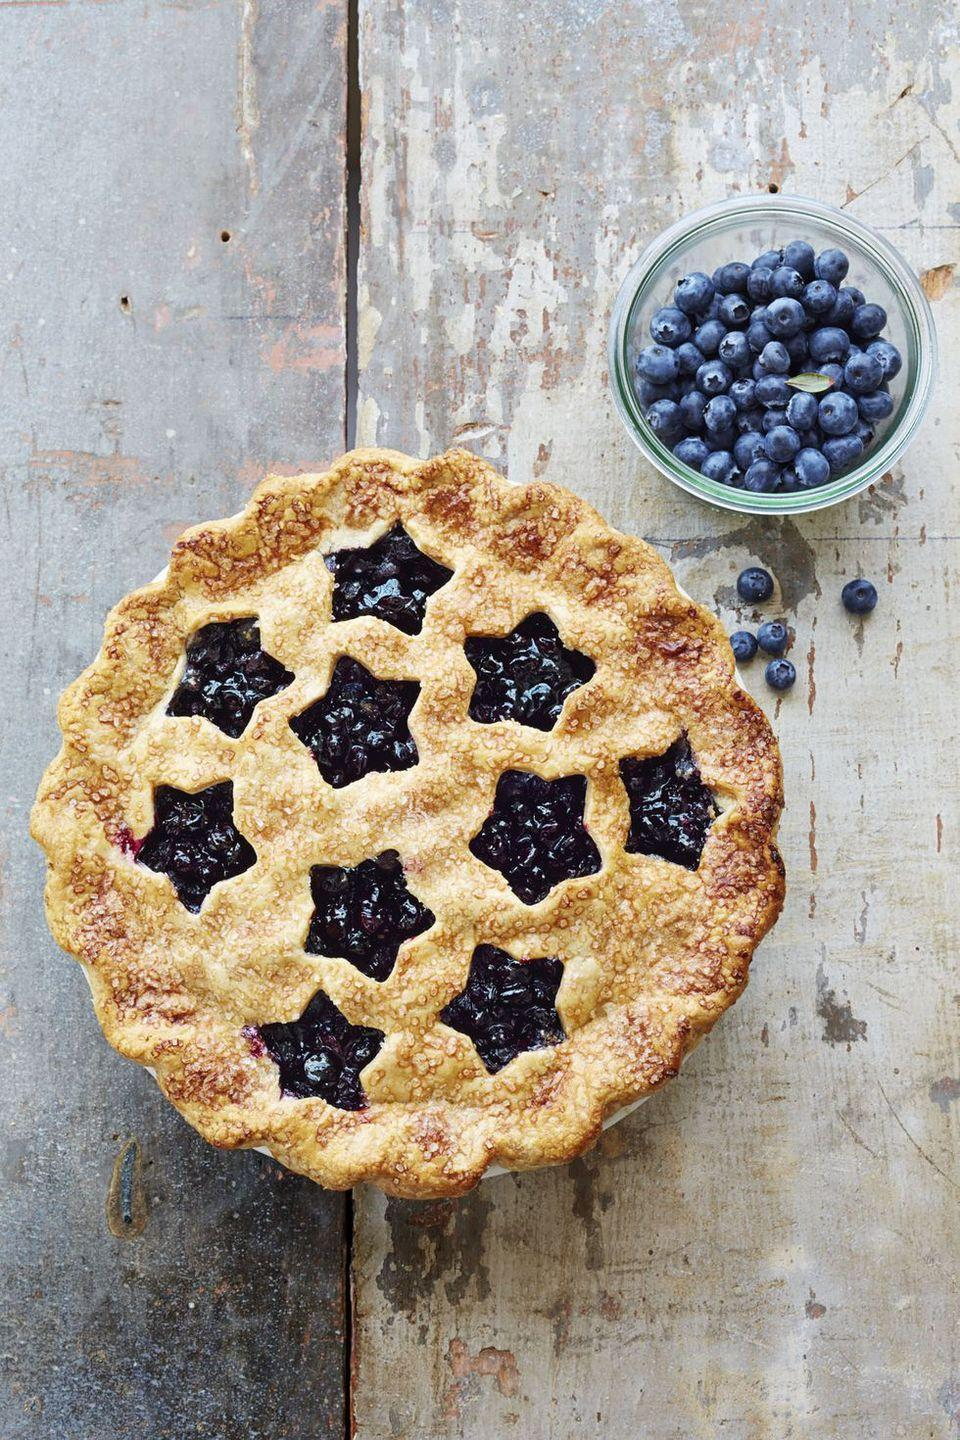 """<p>Turn a basic blueberry pie into a star-studded dessert — literally — with the help of patriotic cookie cutters.</p><p><em><a href=""""https://www.goodhousekeeping.com/food-recipes/dessert/g1328/fruit-pies/?slide=2"""" rel=""""nofollow noopener"""" target=""""_blank"""" data-ylk=""""slk:Get the recipe for Cutaway Blueberry Pie »"""" class=""""link rapid-noclick-resp"""">Get the recipe for Cutaway Blueberry Pie »</a></em></p>"""